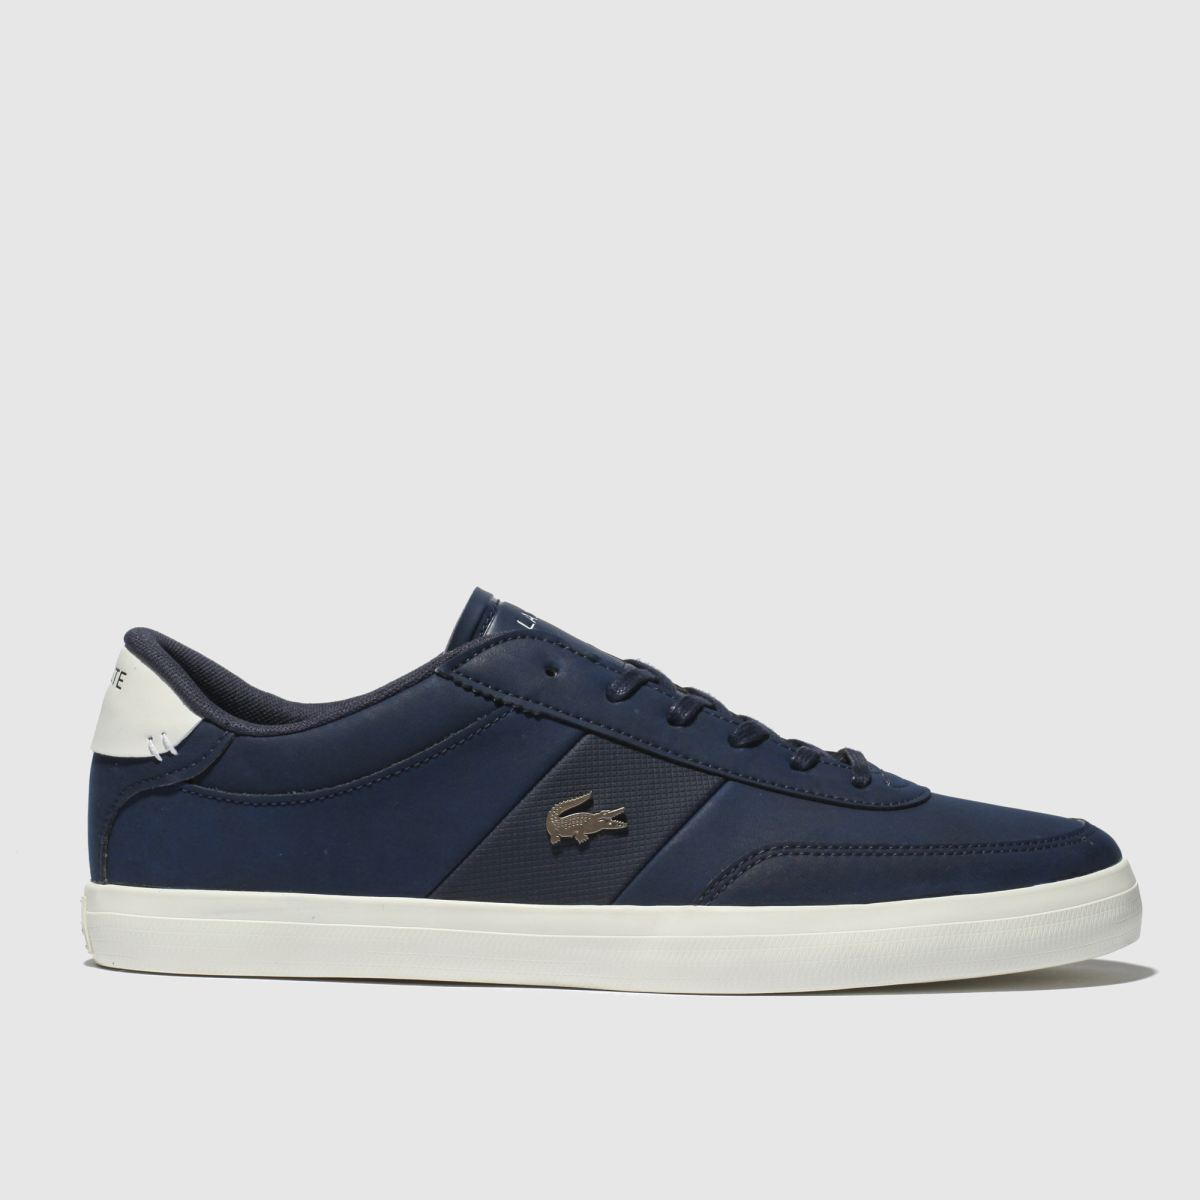 Lacoste Navy & White Court-master Trainers